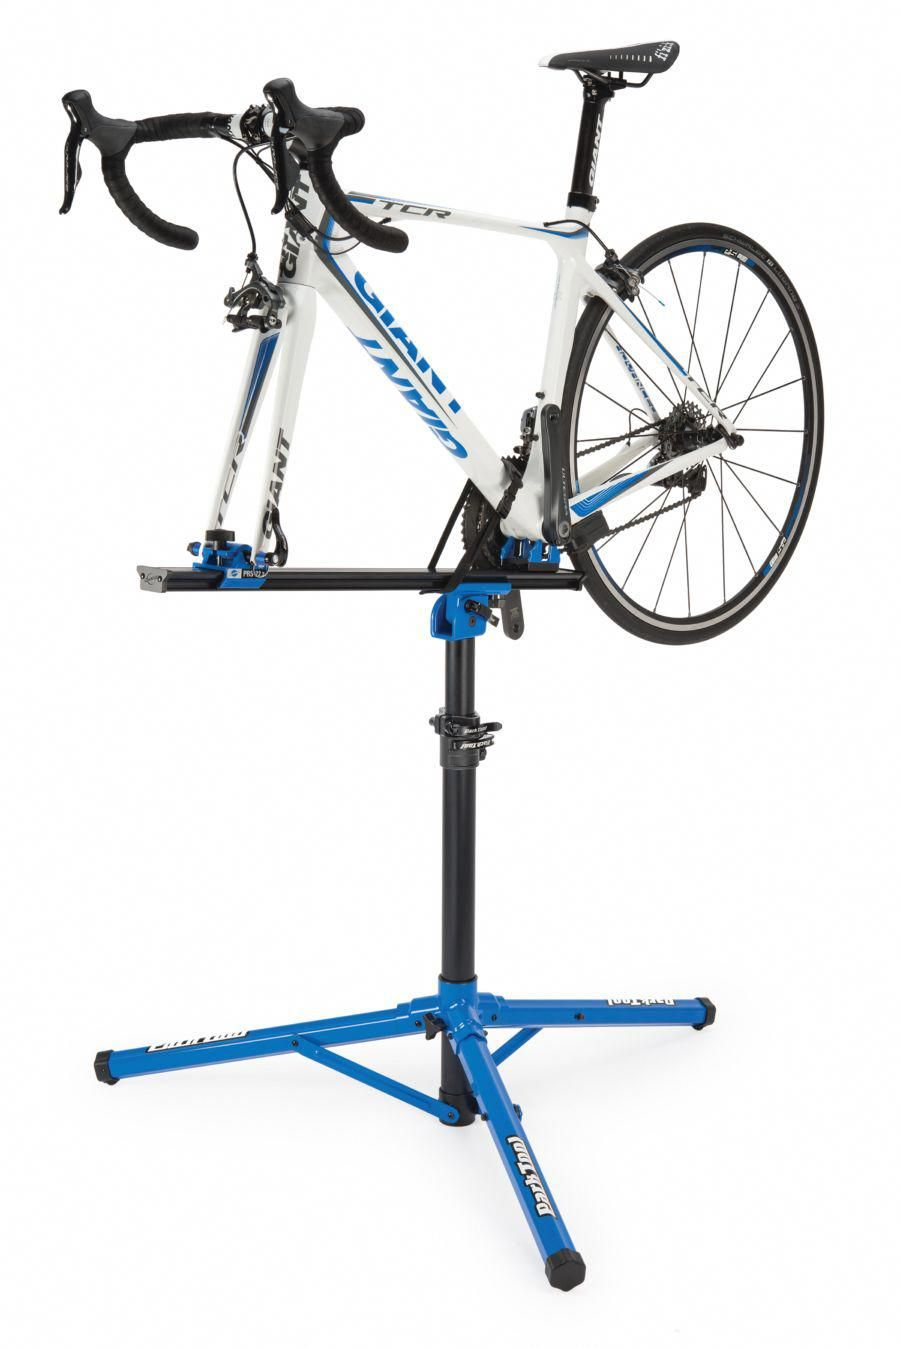 Prs 22 2 Team Issue Repair Stand Park Tool Bikerepairstand Bike Repair Bike Repair Stand Bicycle